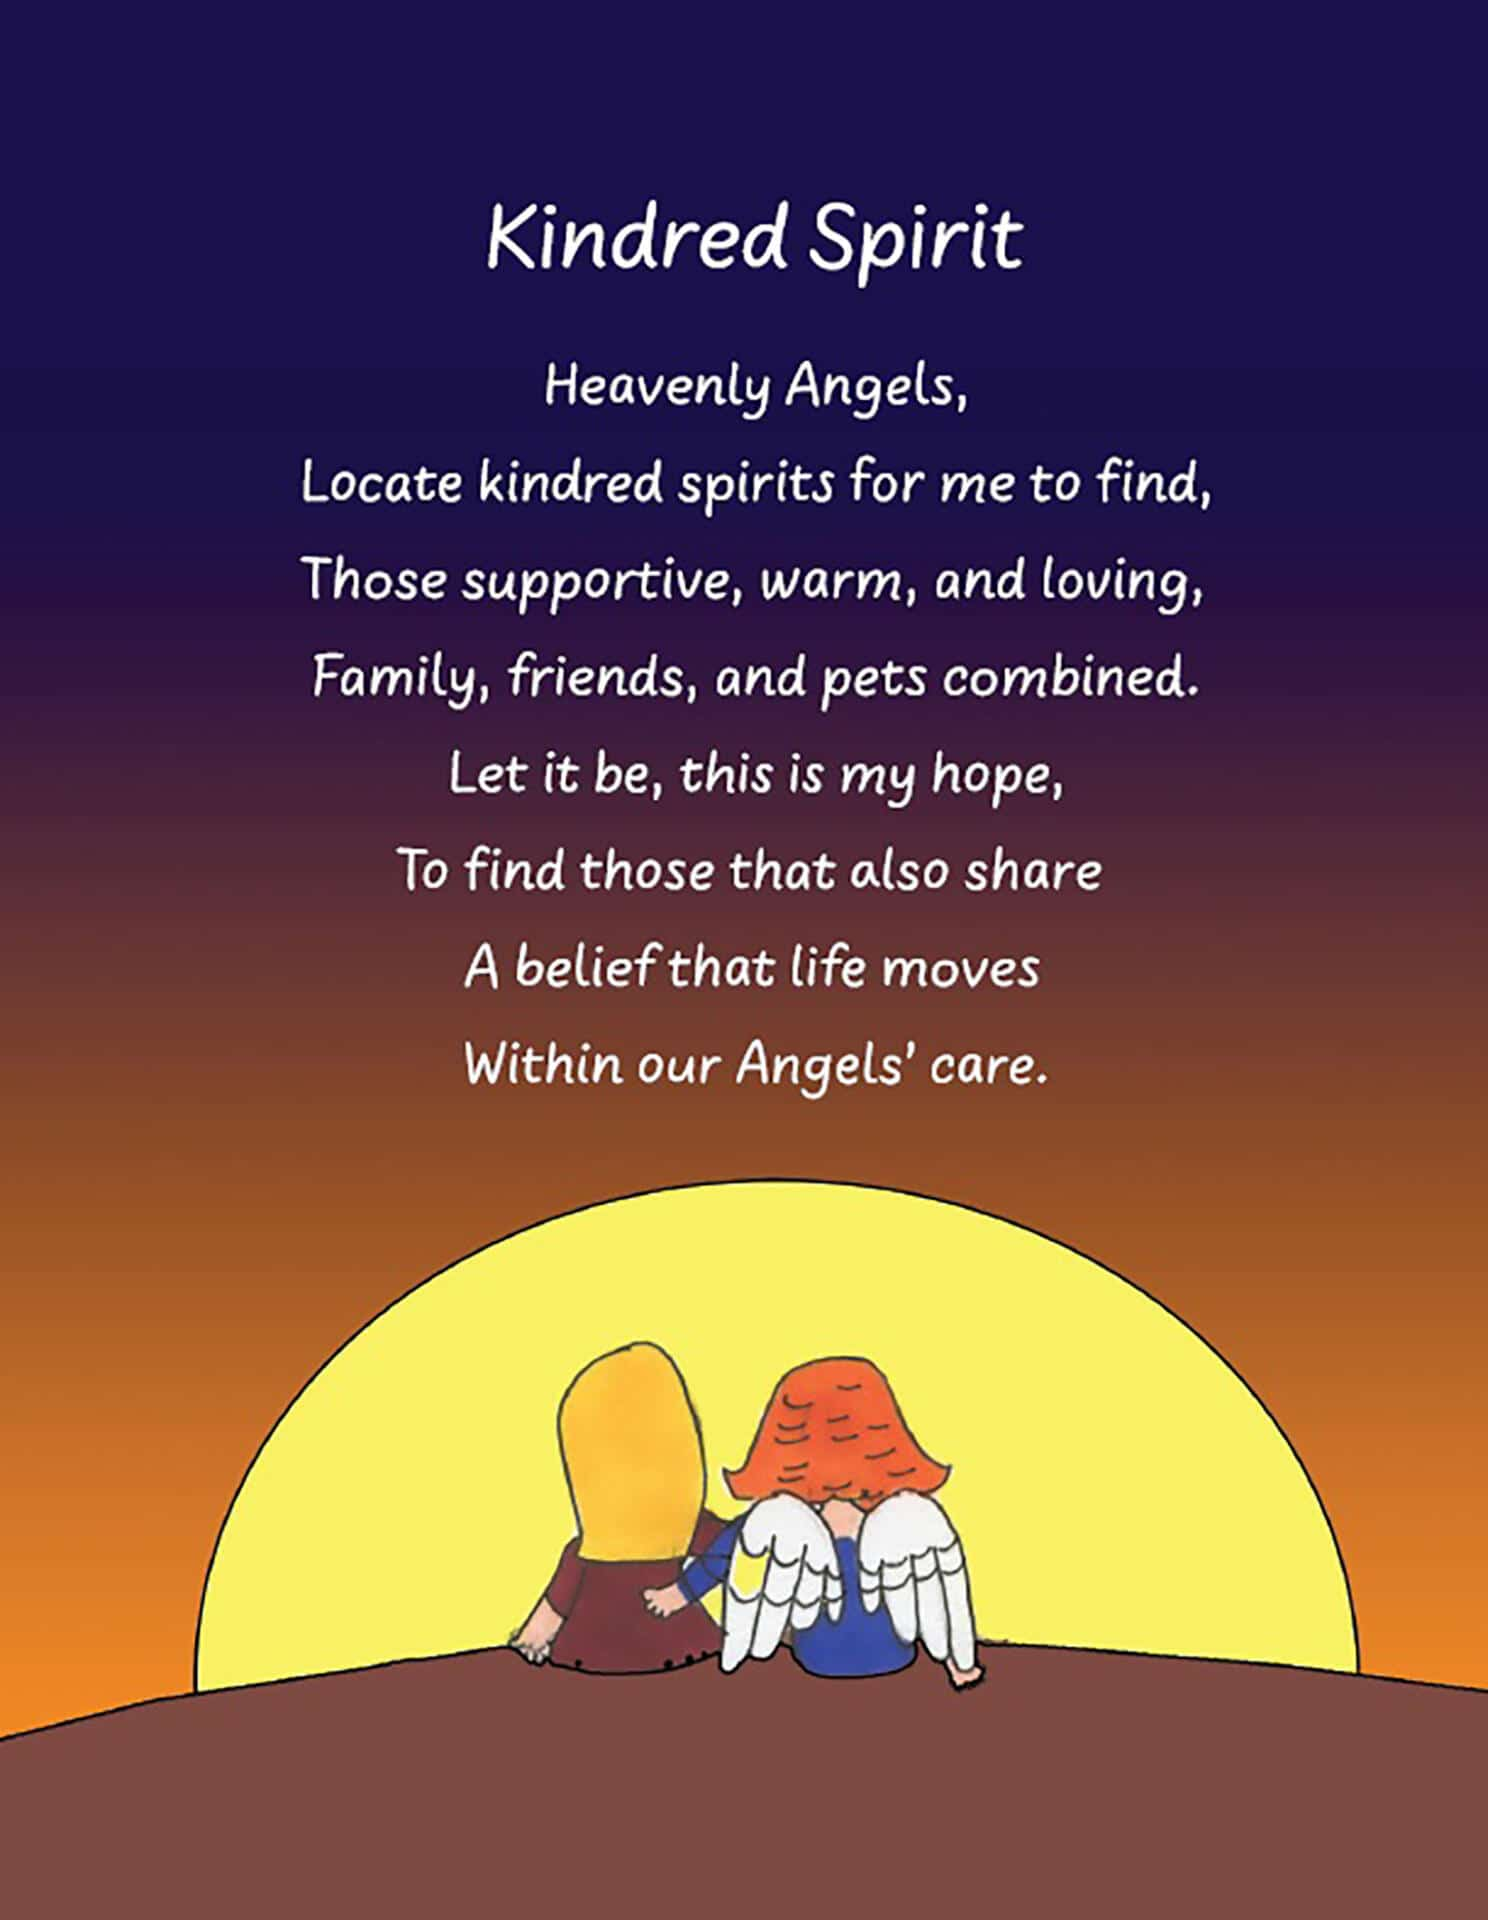 Kindred Spirits eCard